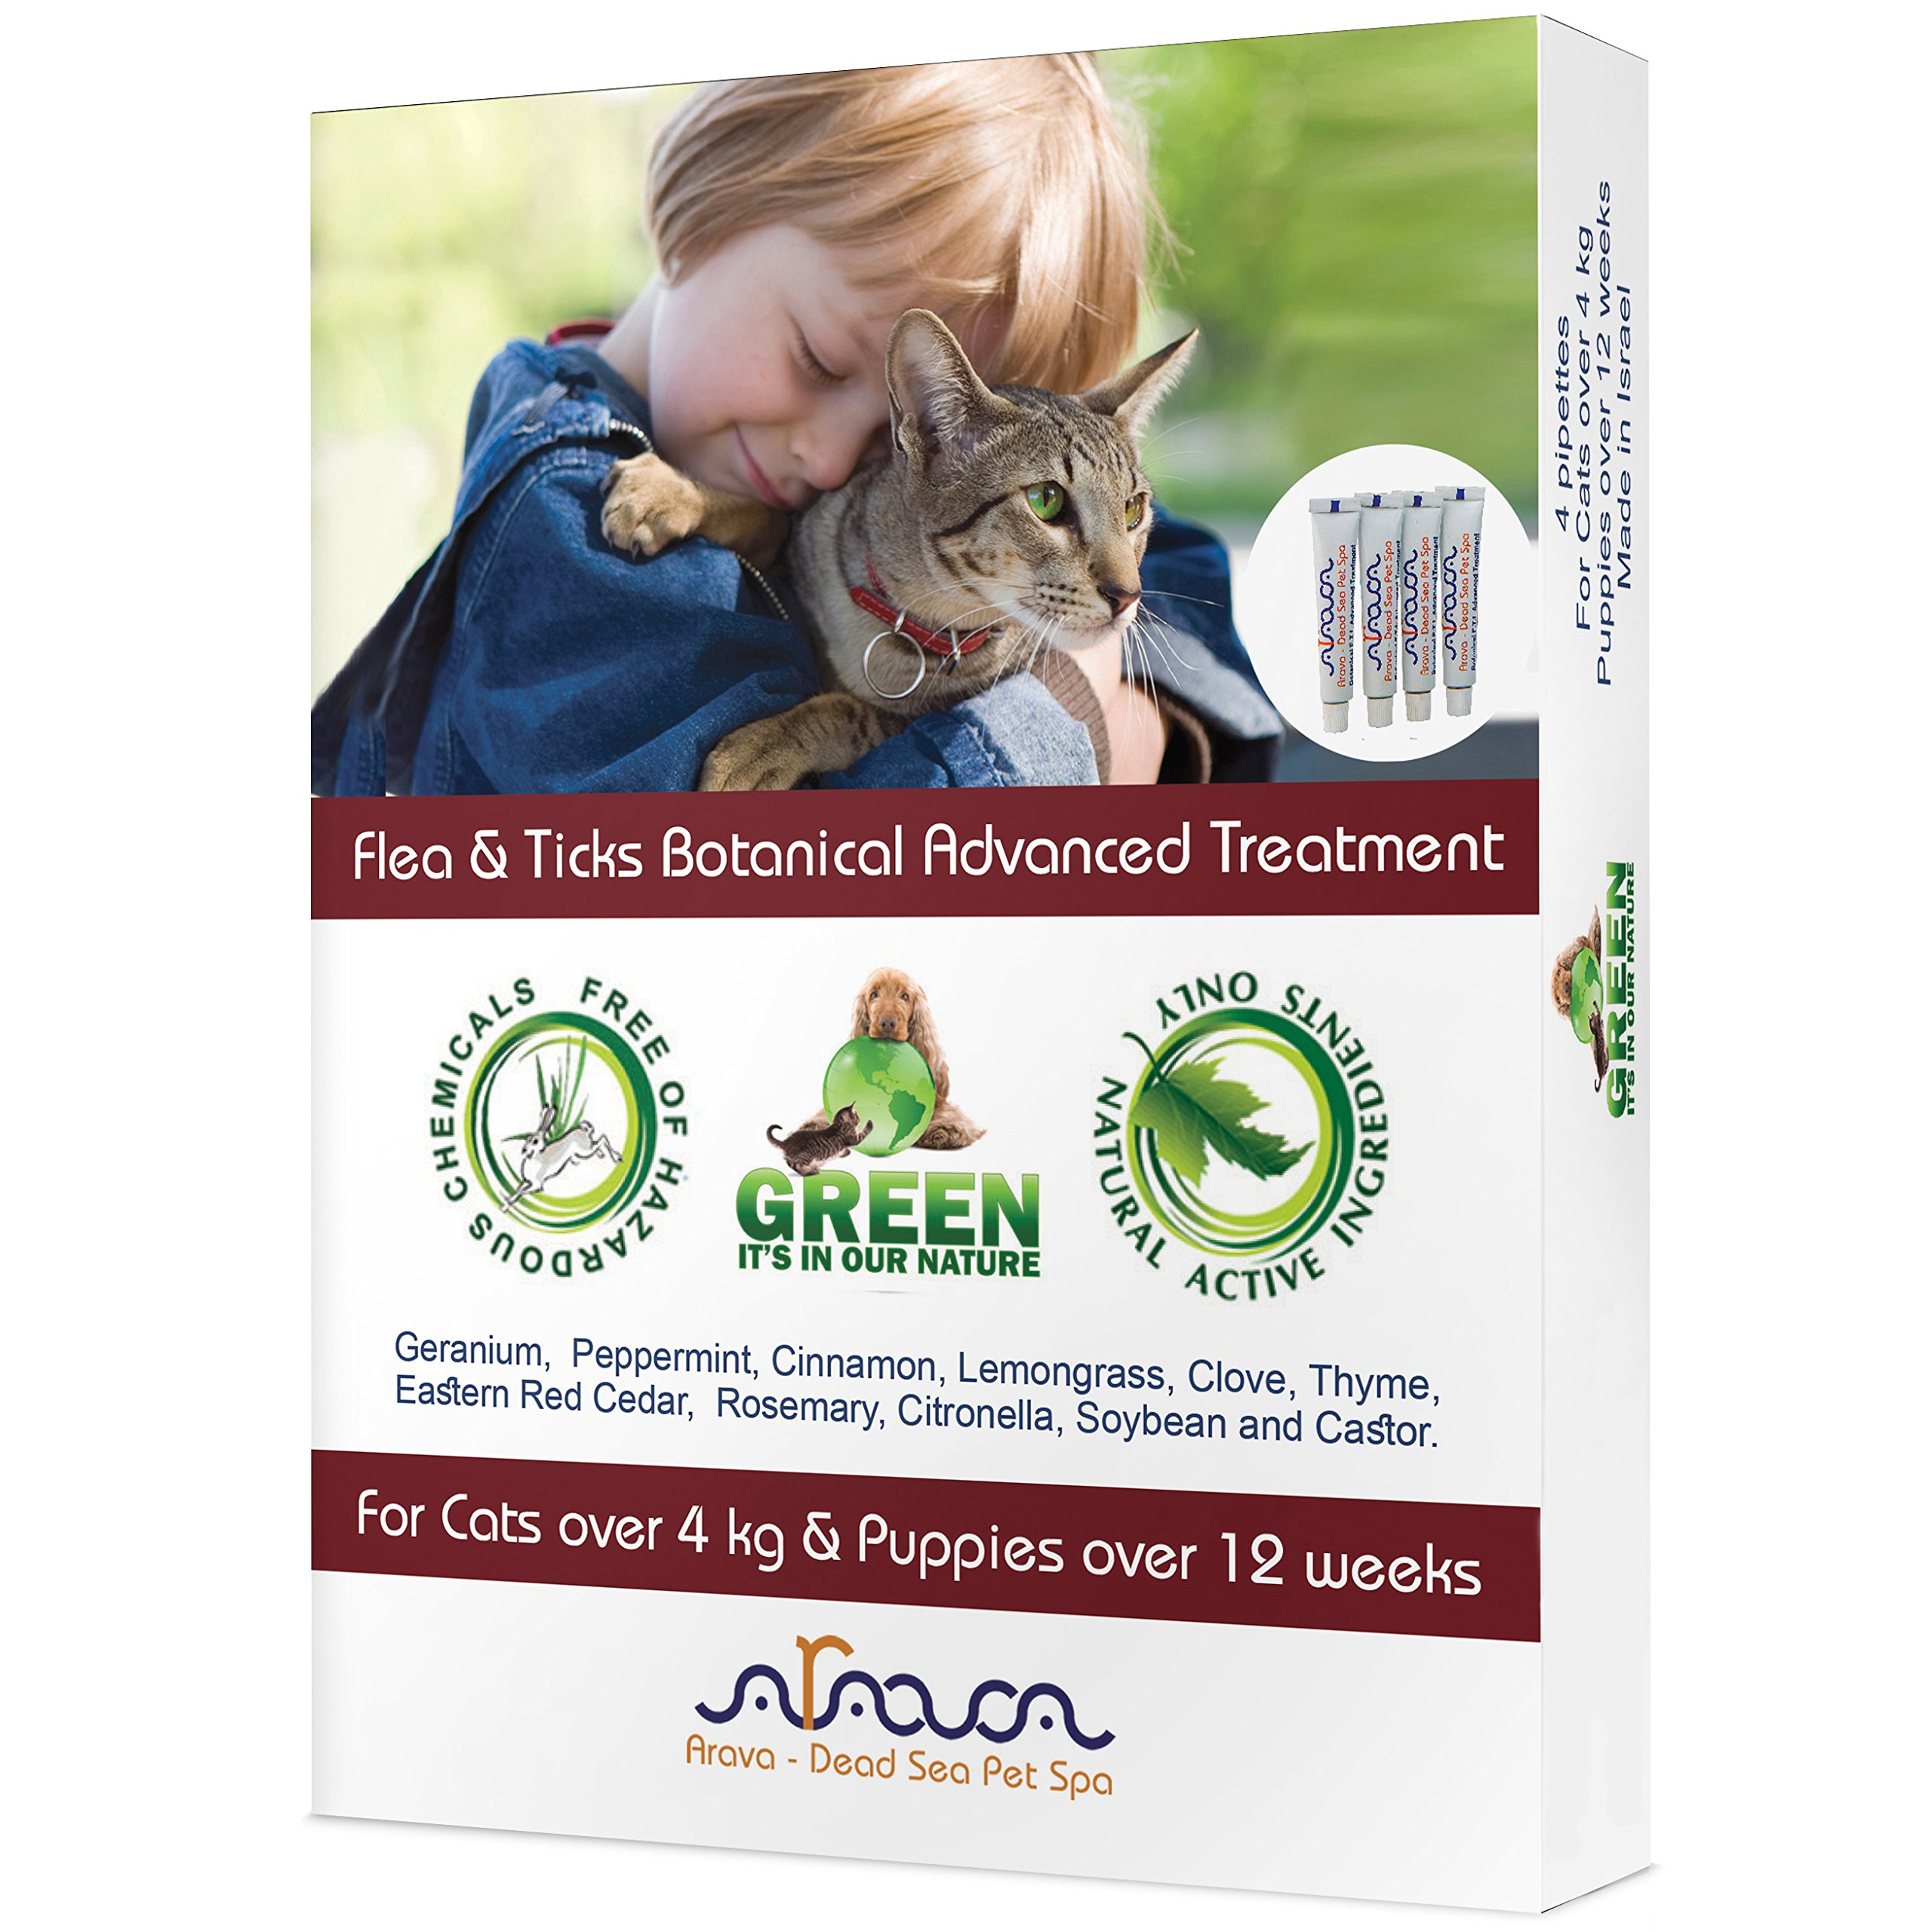 Arava Flea & Tick Control Drops - Treatment for Cats & Puppies - Safe for Kids - 4 Pack - Botanical Drops Repel Pests with Natural Oils - Safe for Pets - Enhanced Defense & Prevention (2 Variations)